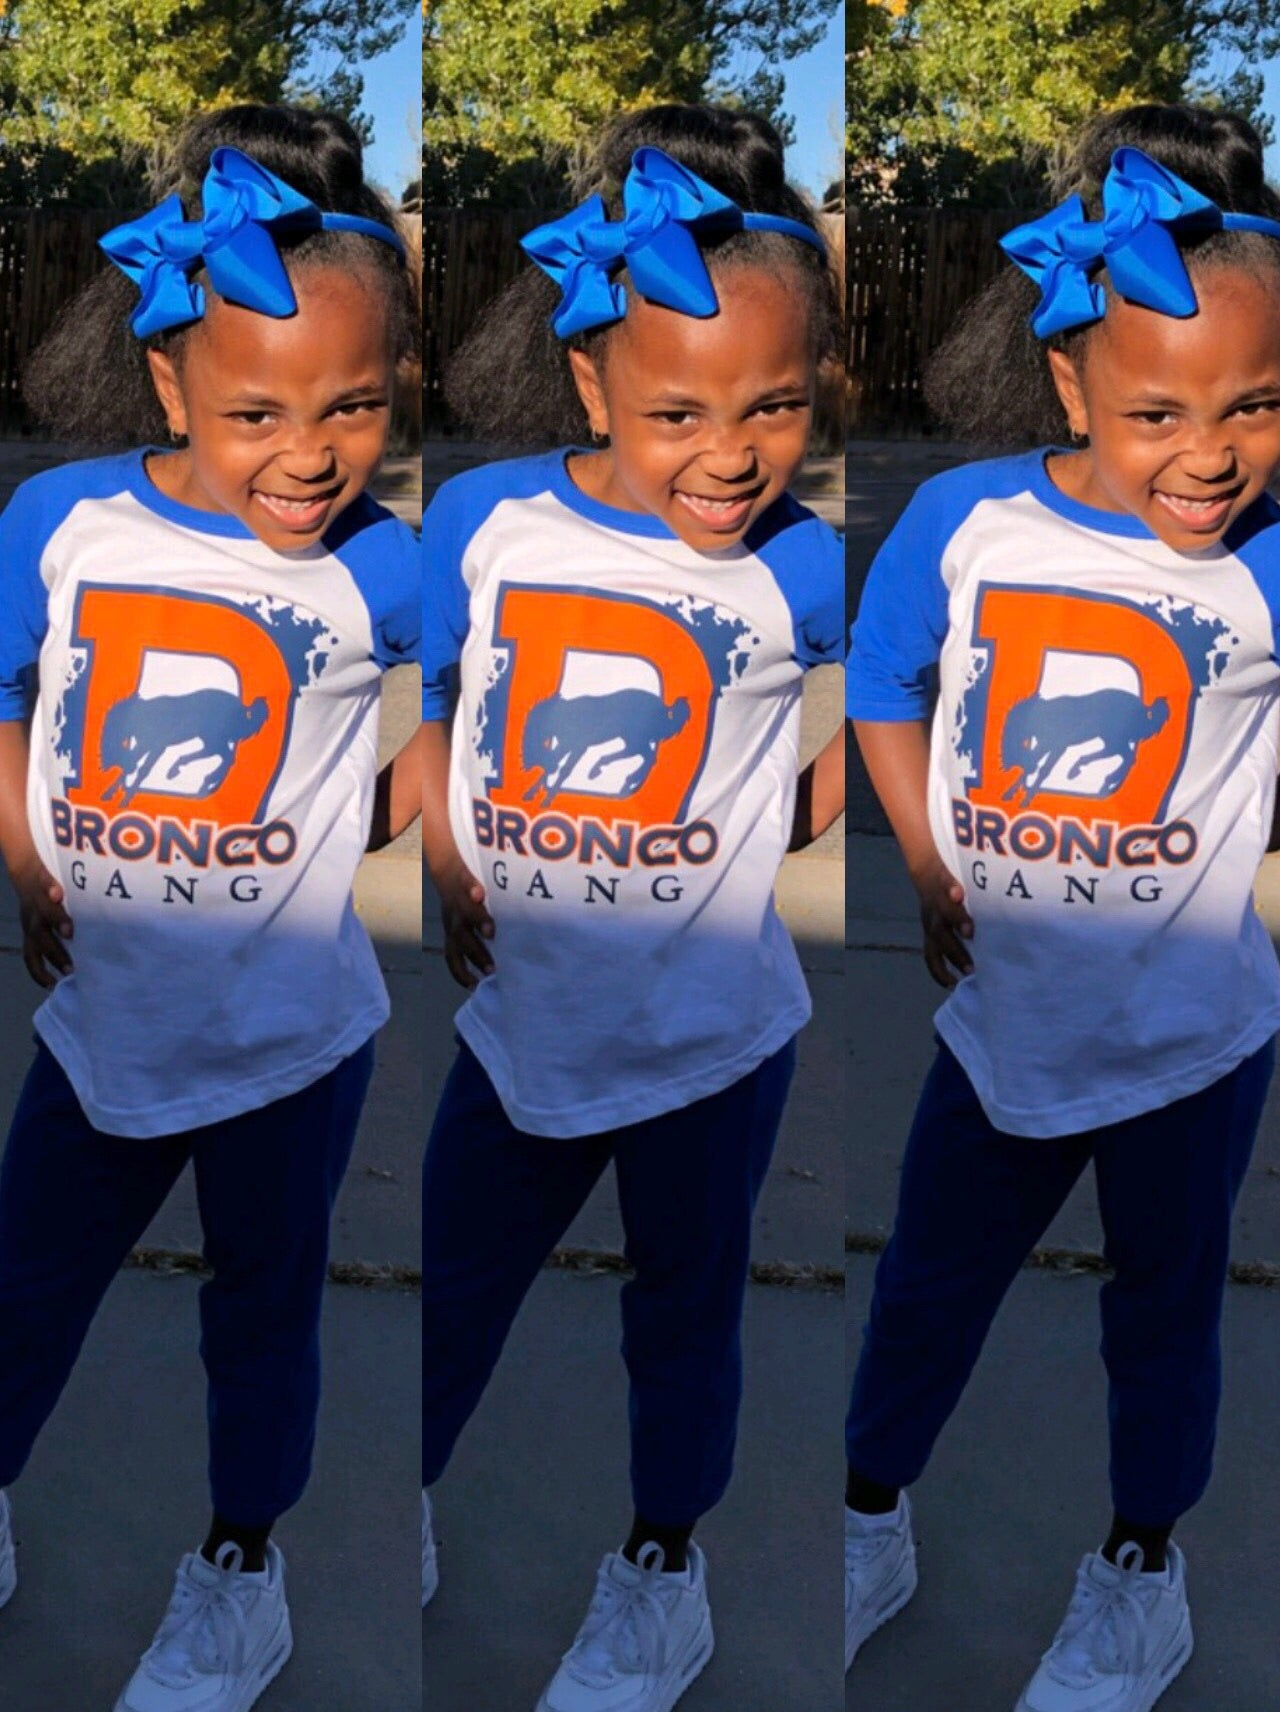 Kids - Bronco Gang Tee Shirt